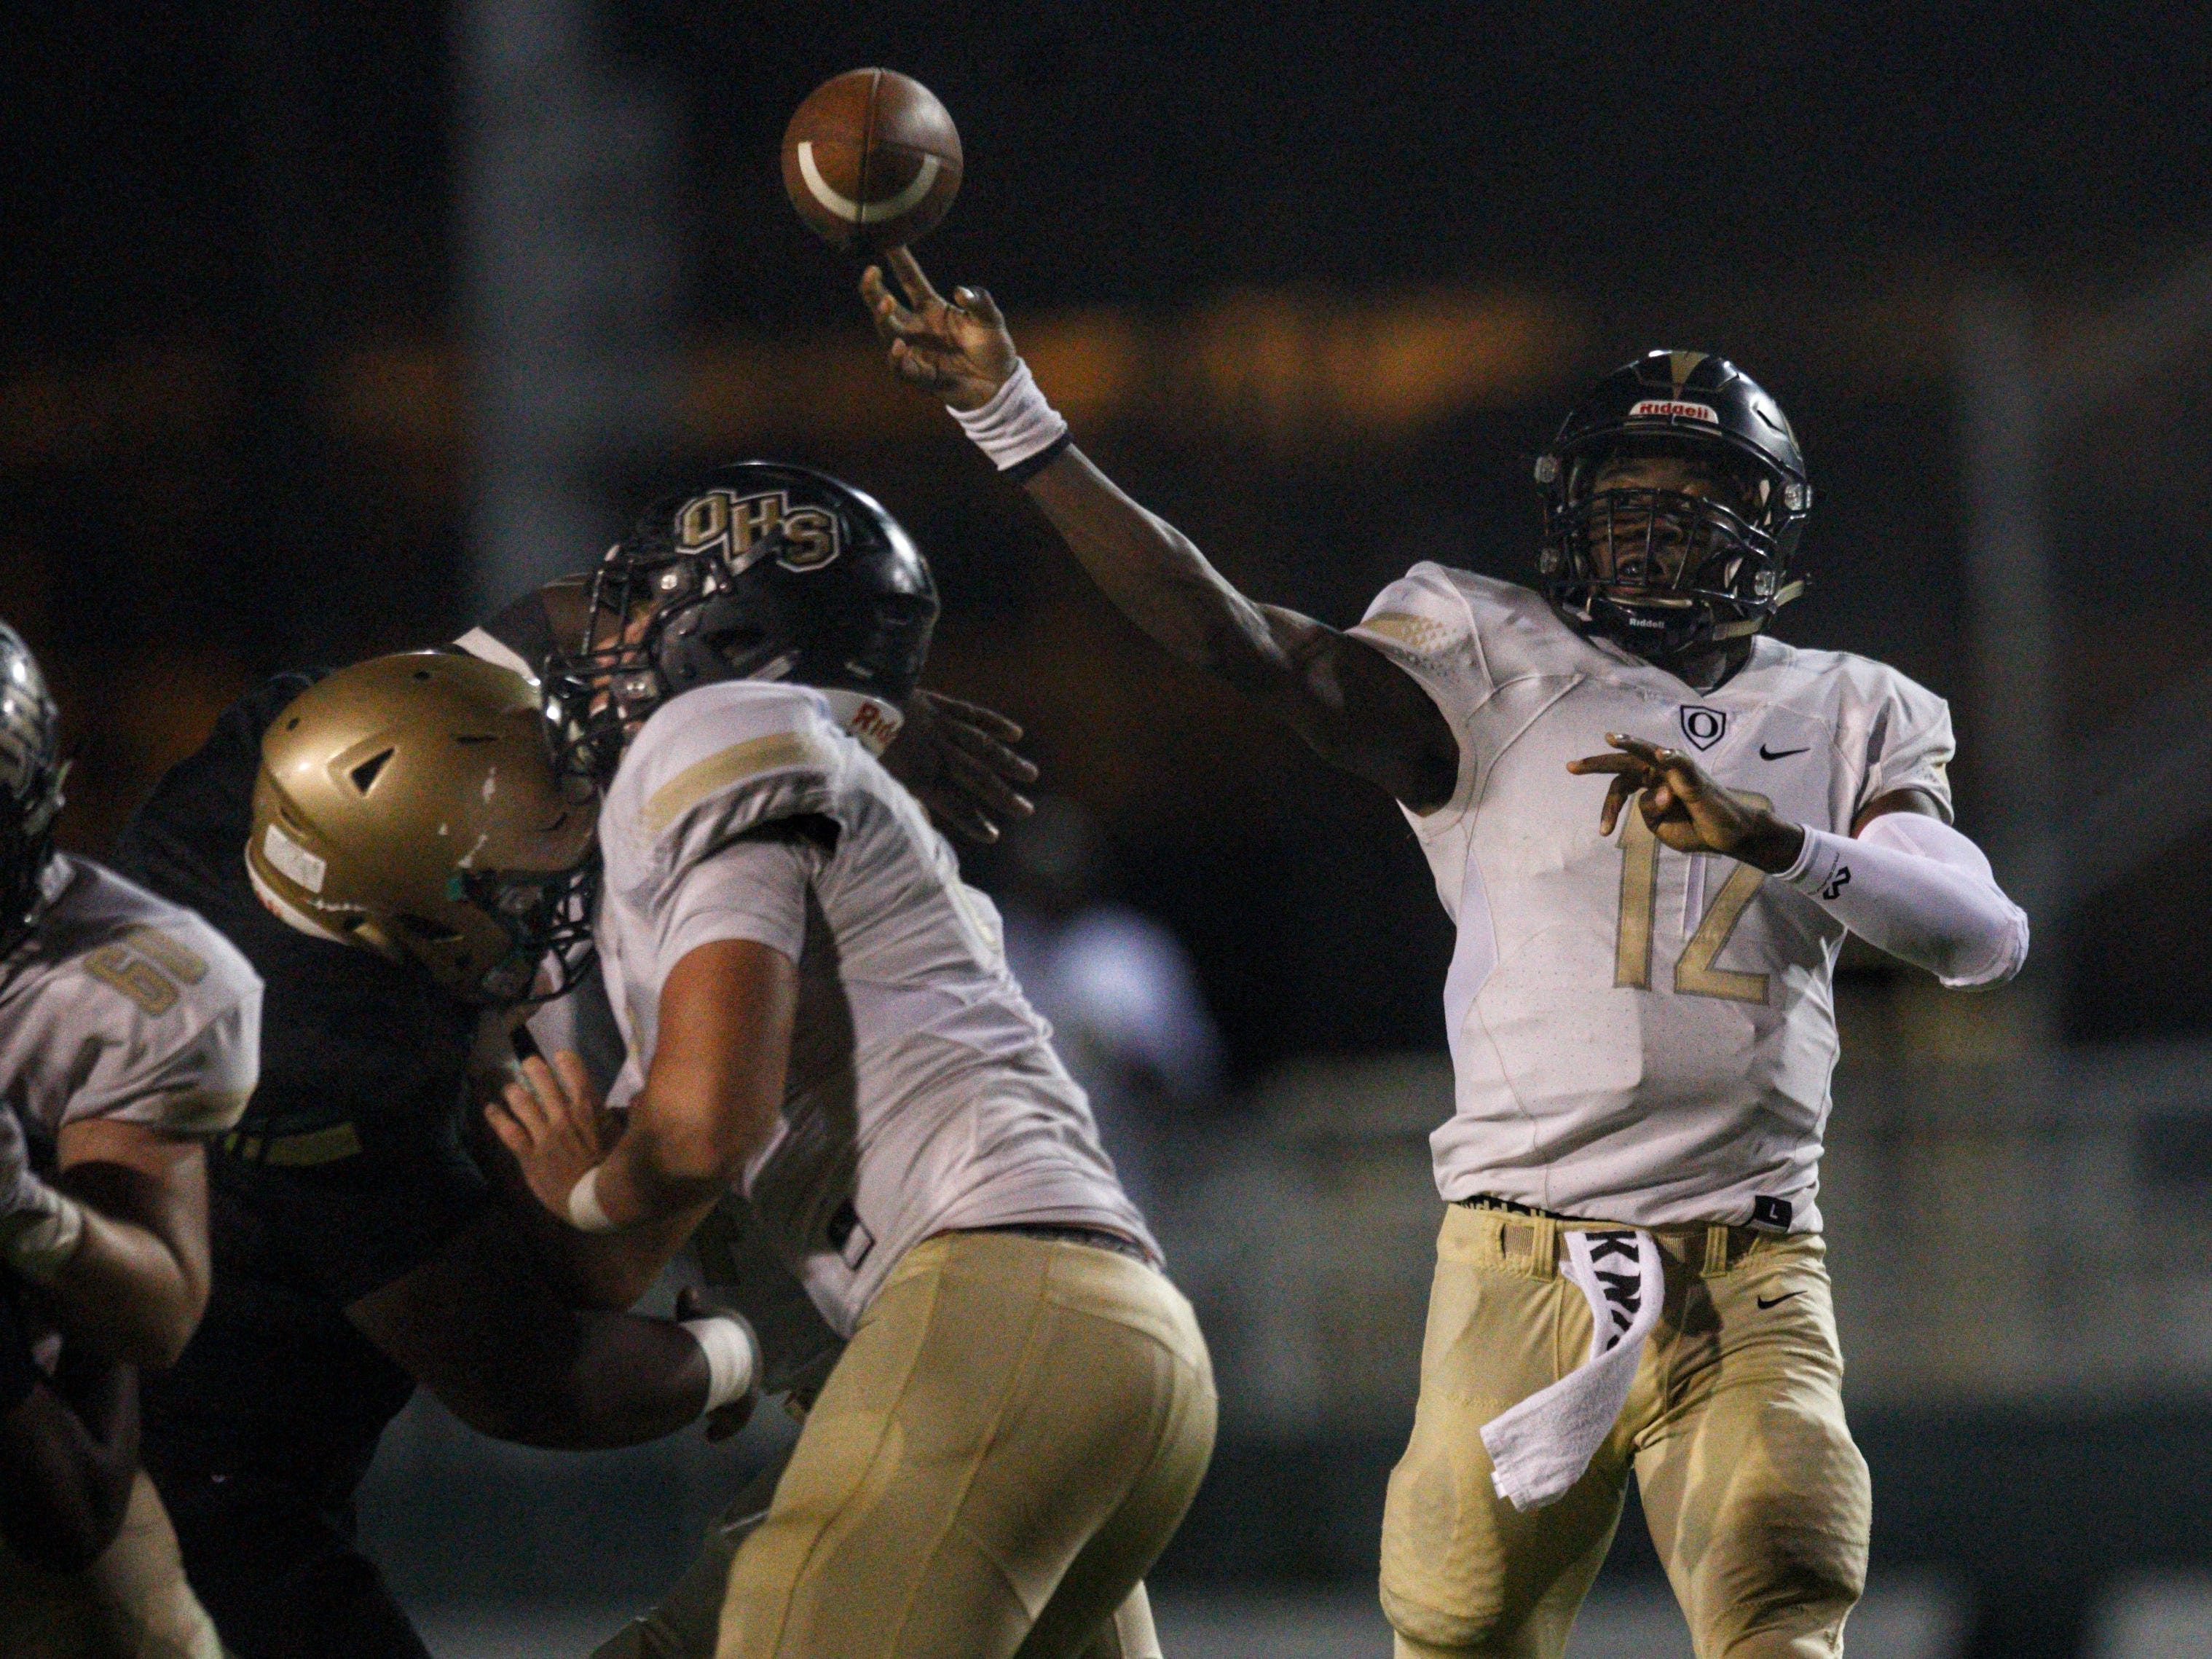 Oakleaf quarterback Walter Simmons III throws a pass as Lincoln beat Oakleaf 38-31 in three overtime periods in a  Region 1-7A quarterfinal Thursday night at Gene Cox Stadium.